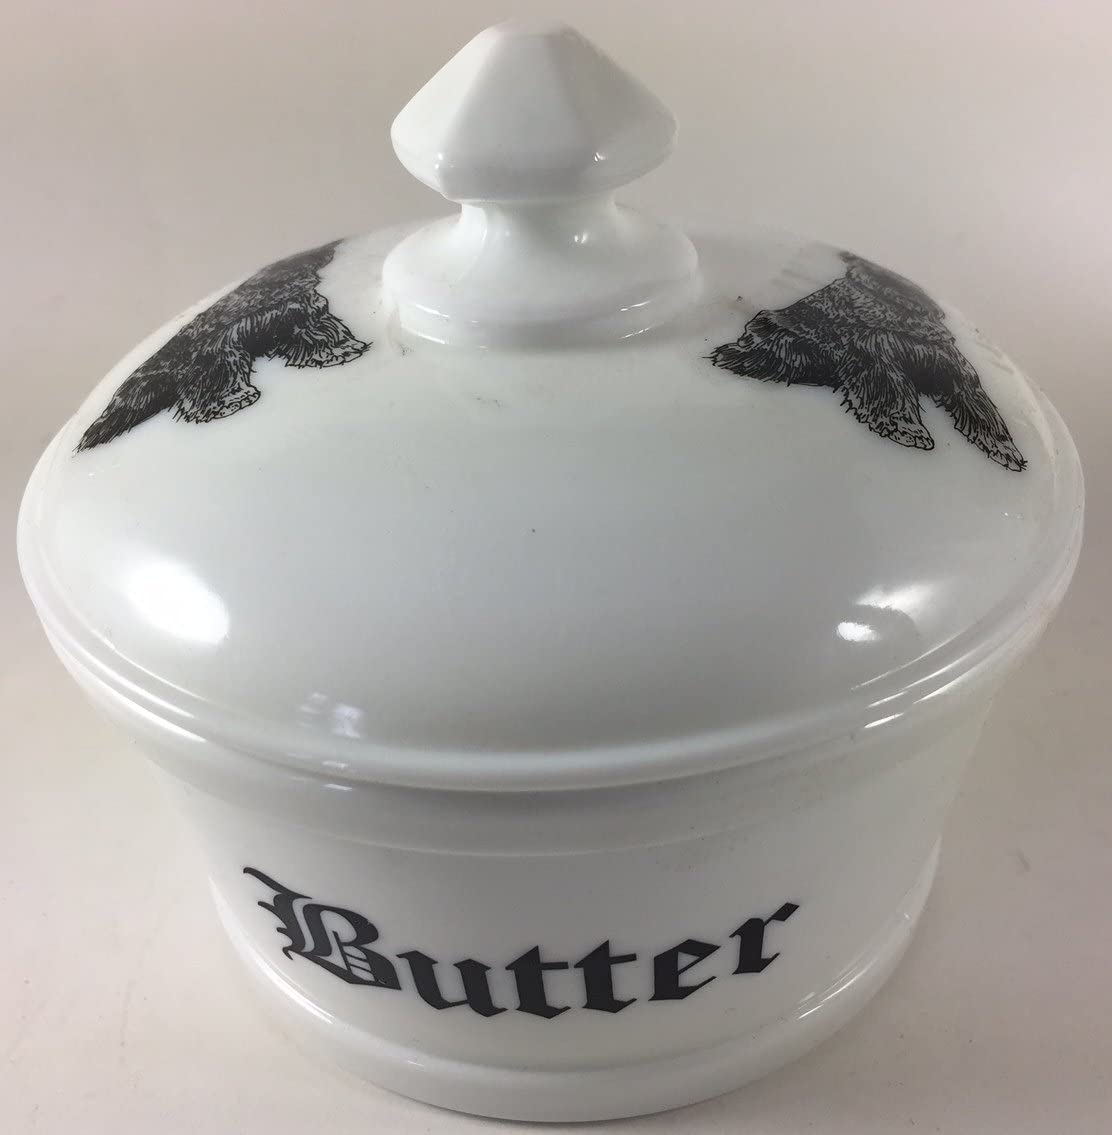 Butterdish/Butter Tub - Butter w/Schnauzer Dogs - Rosso Exclusive - American Made (Milk)